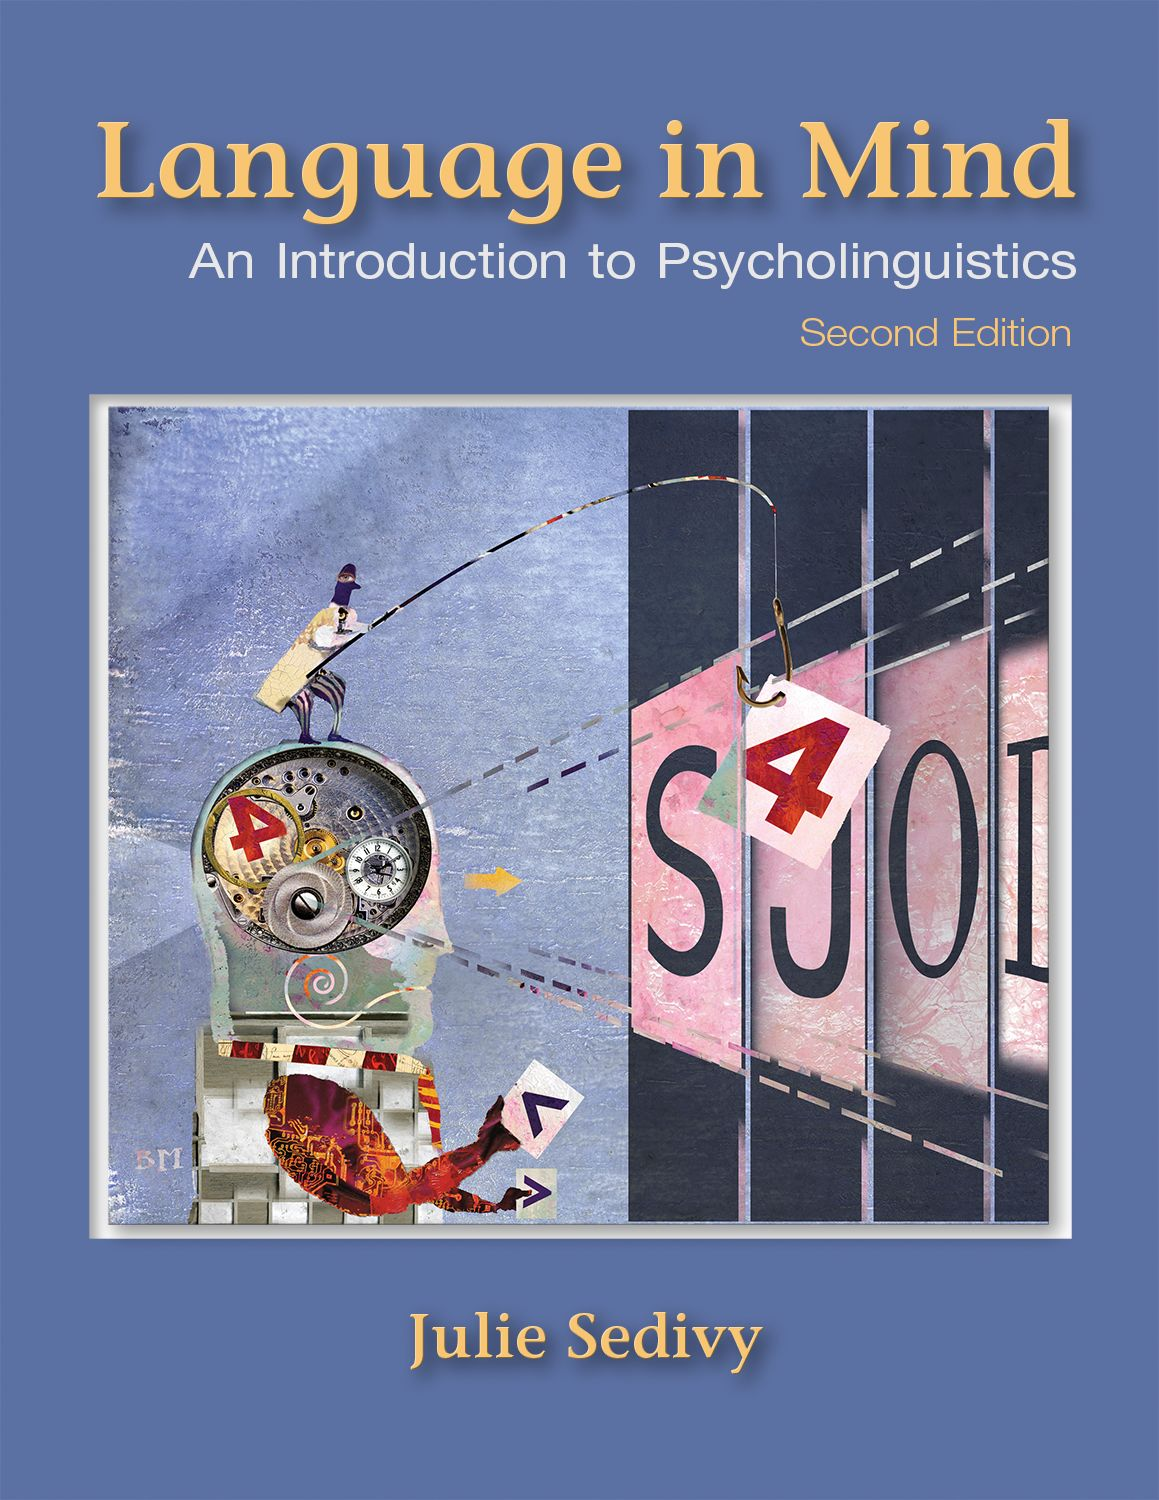 Language in Mind 2e Student Resources